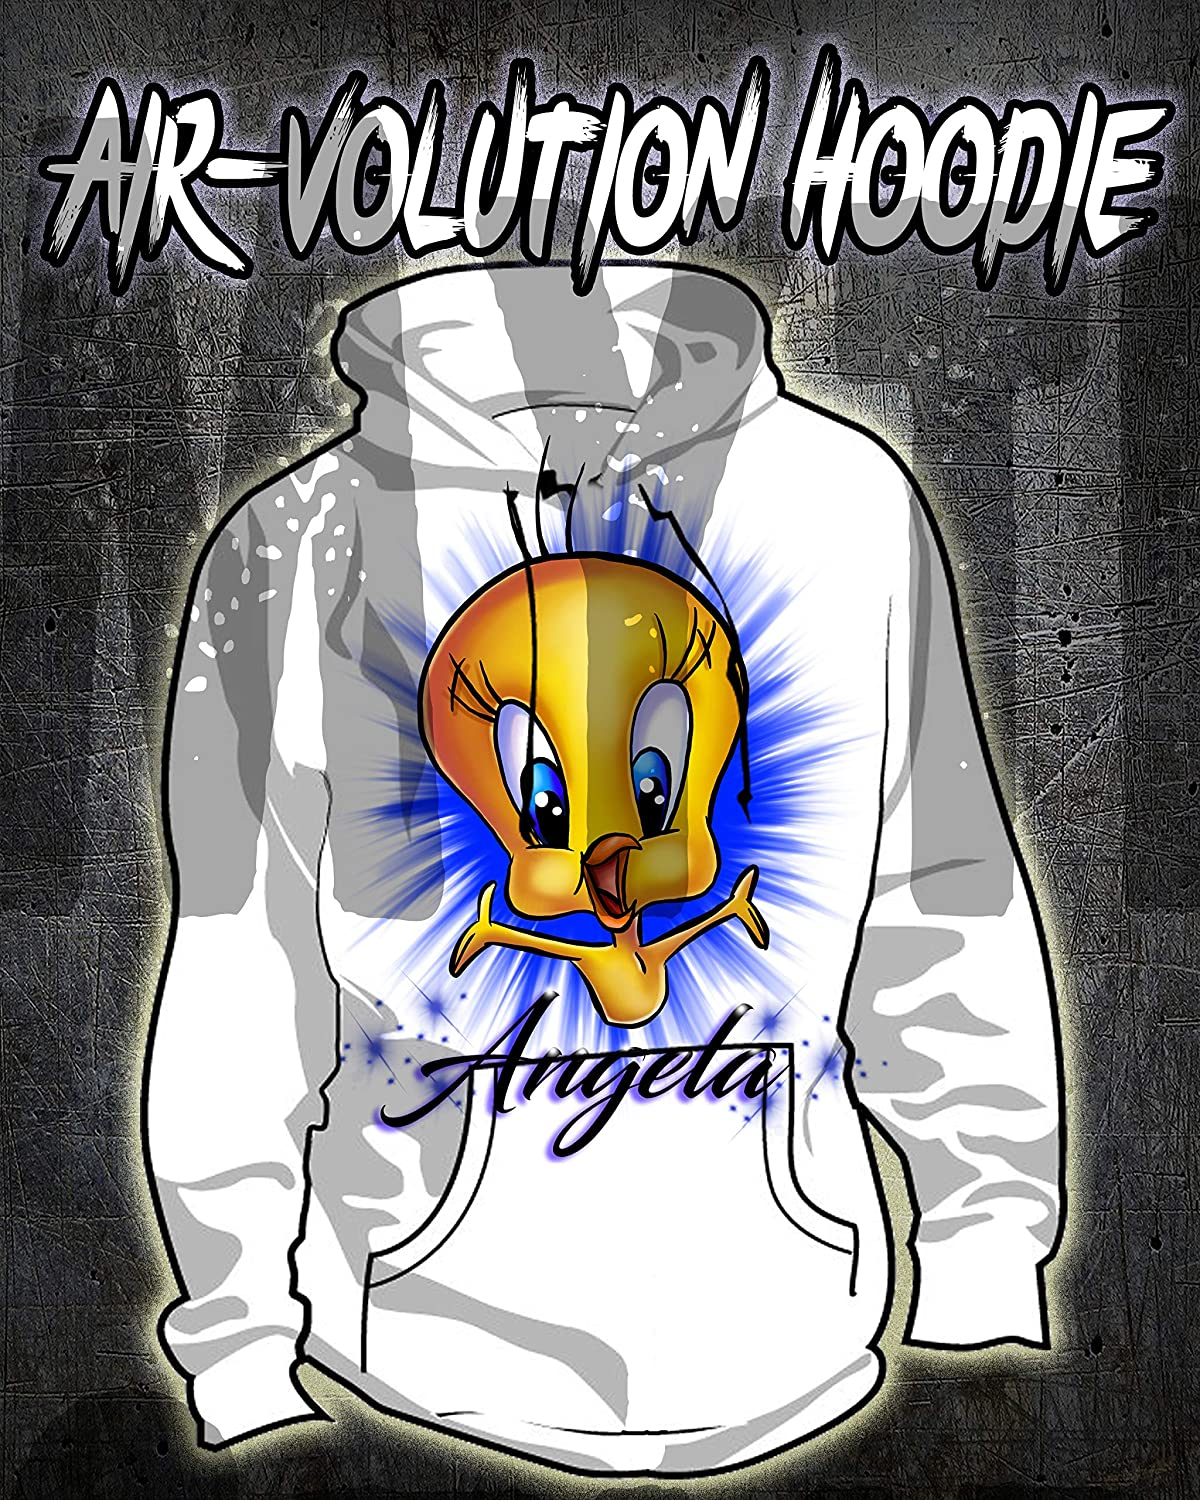 YOUR NAME Airbrushed HOODED SWEATSHIRT Custom Personalized All Sizes Up to 5X